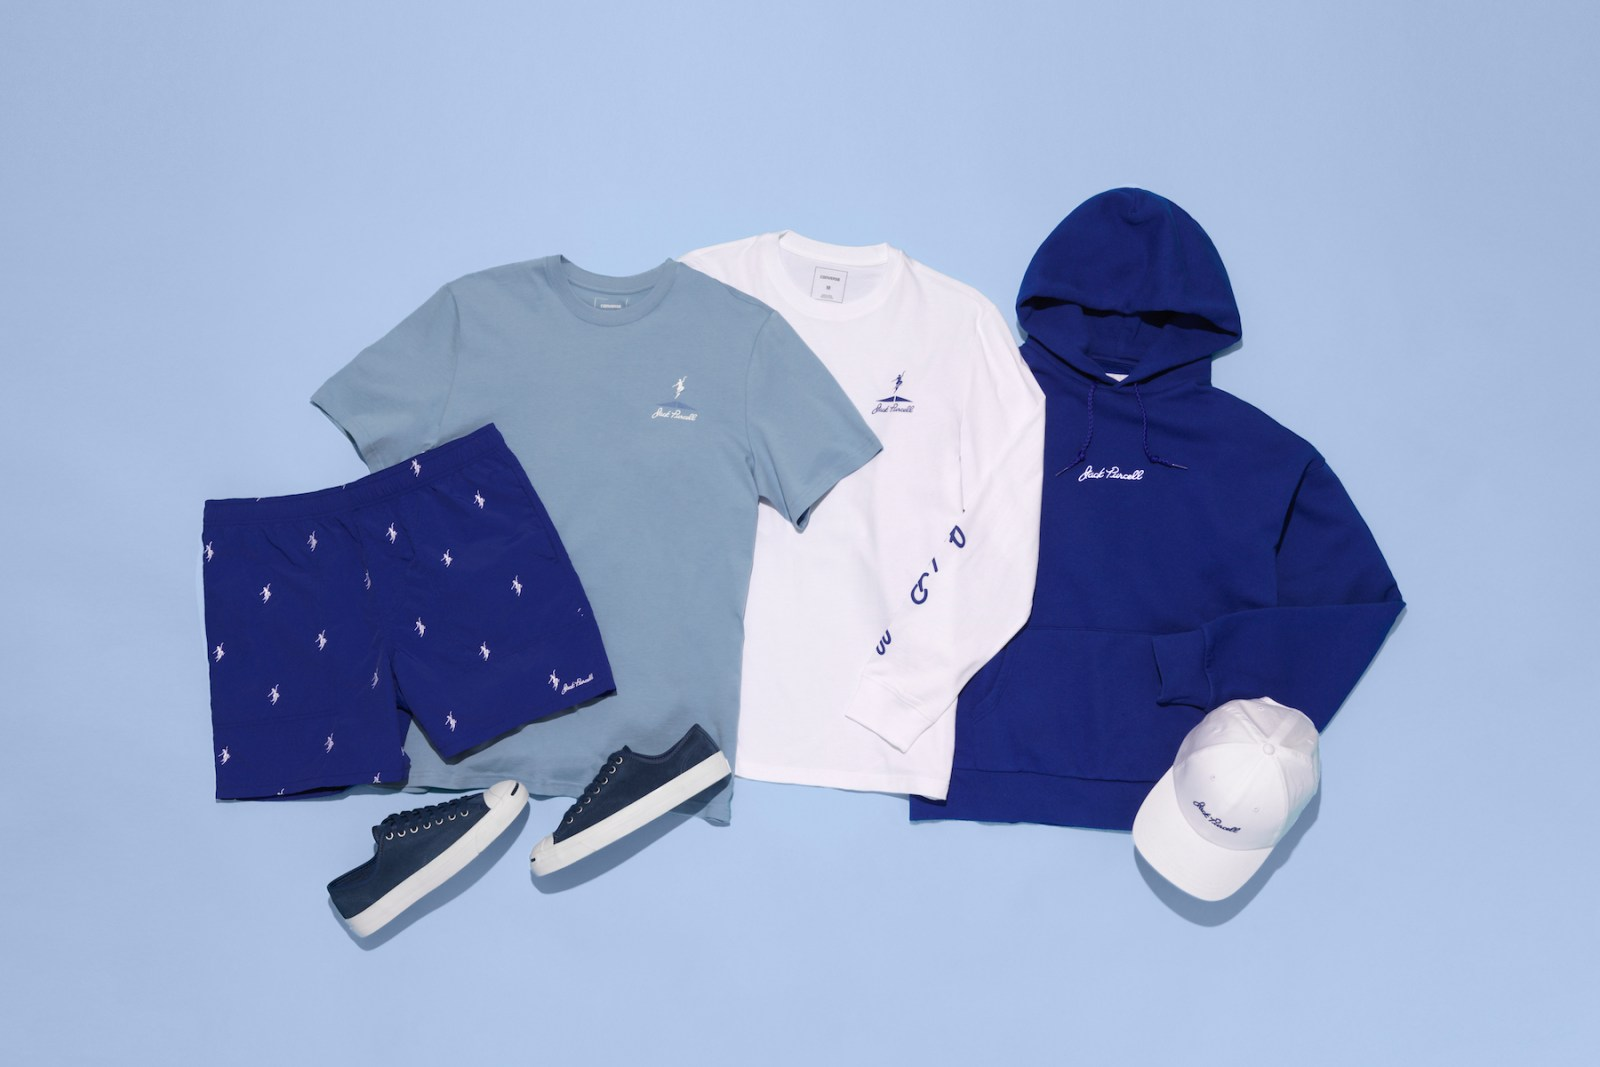 Converse Cons x Polar Skate Co. 聯乘Jack Purcell Pro 系列Lookbook ... ede26b6e7